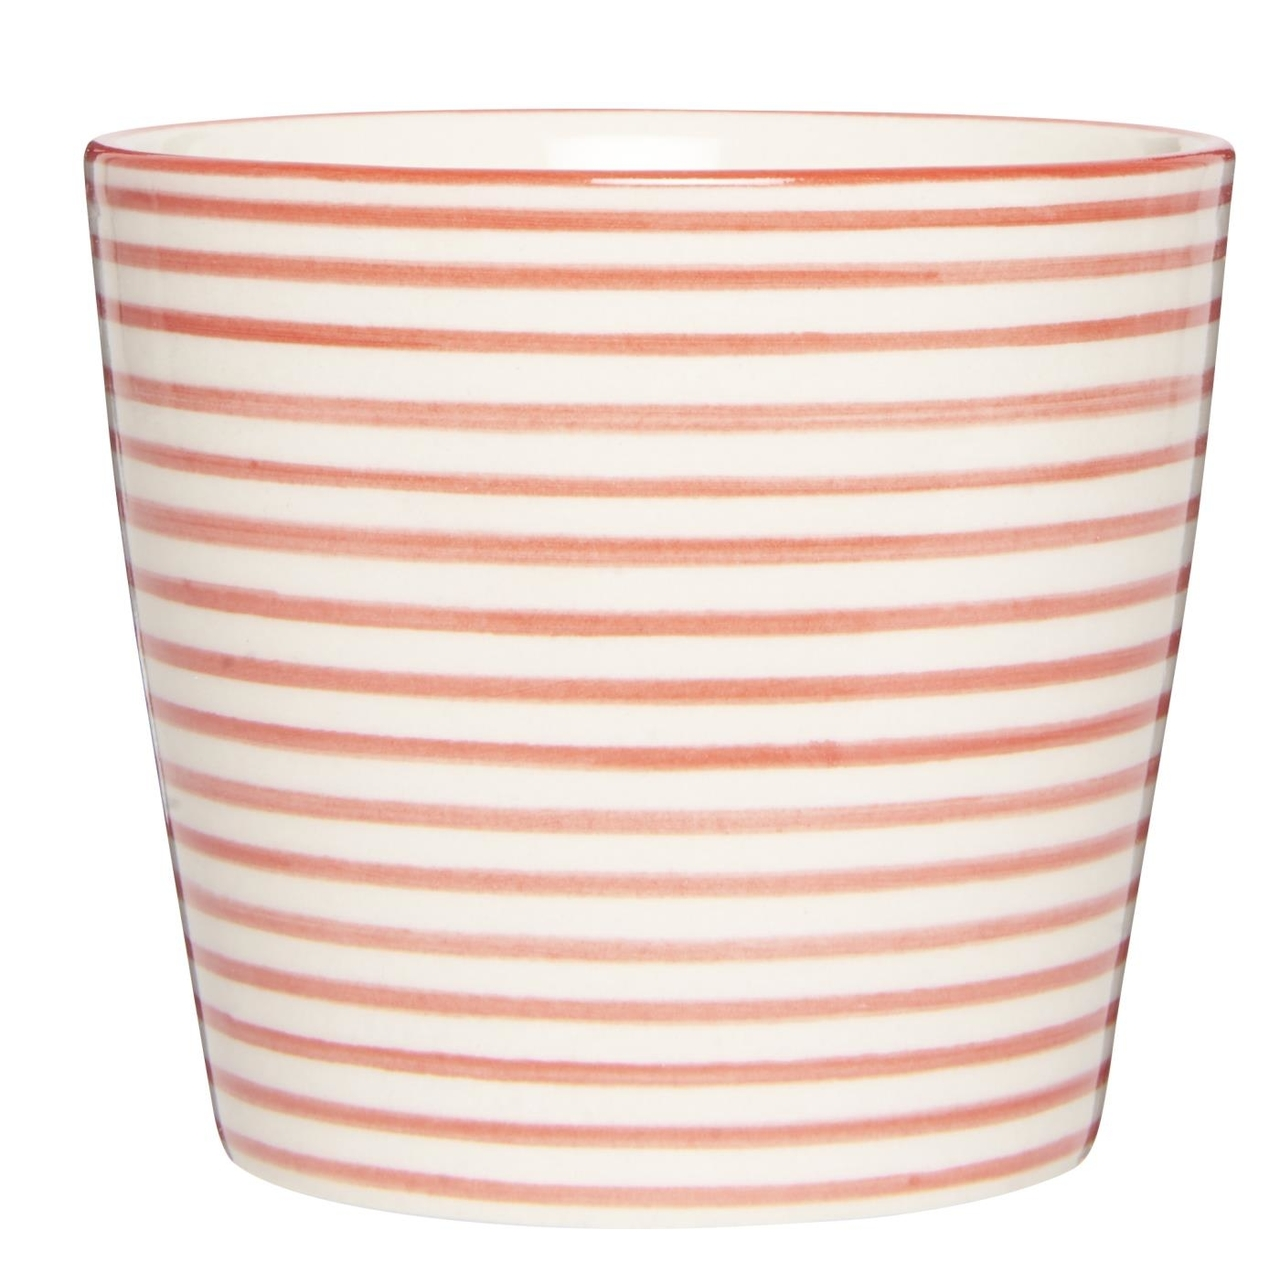 Ib Laursen Becher klein Casablanca Stripes